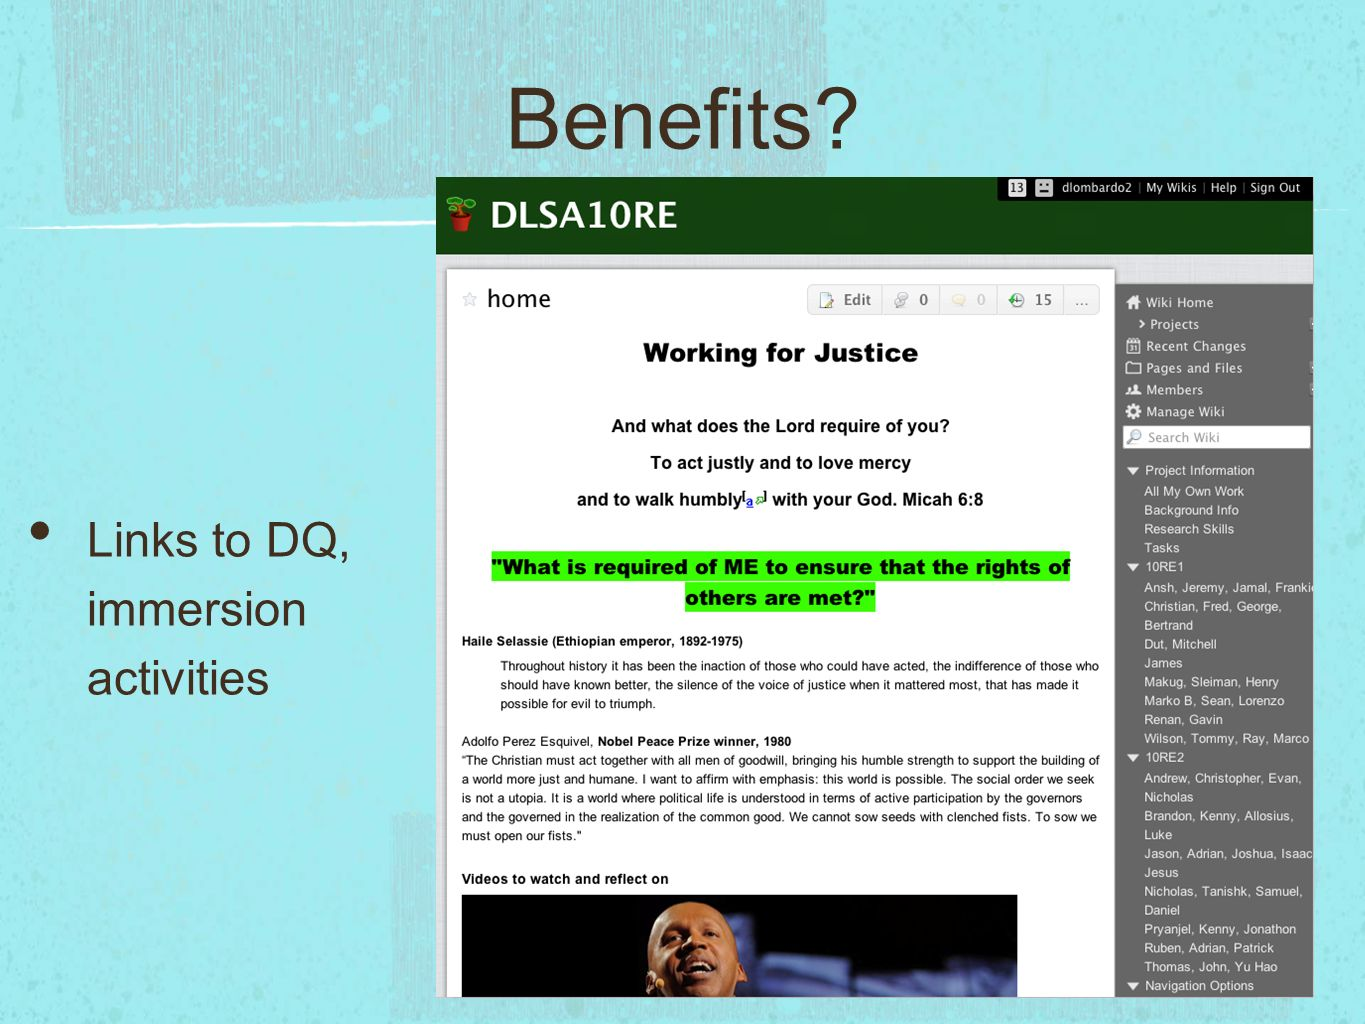 Benefits Links to DQ, immersion activities